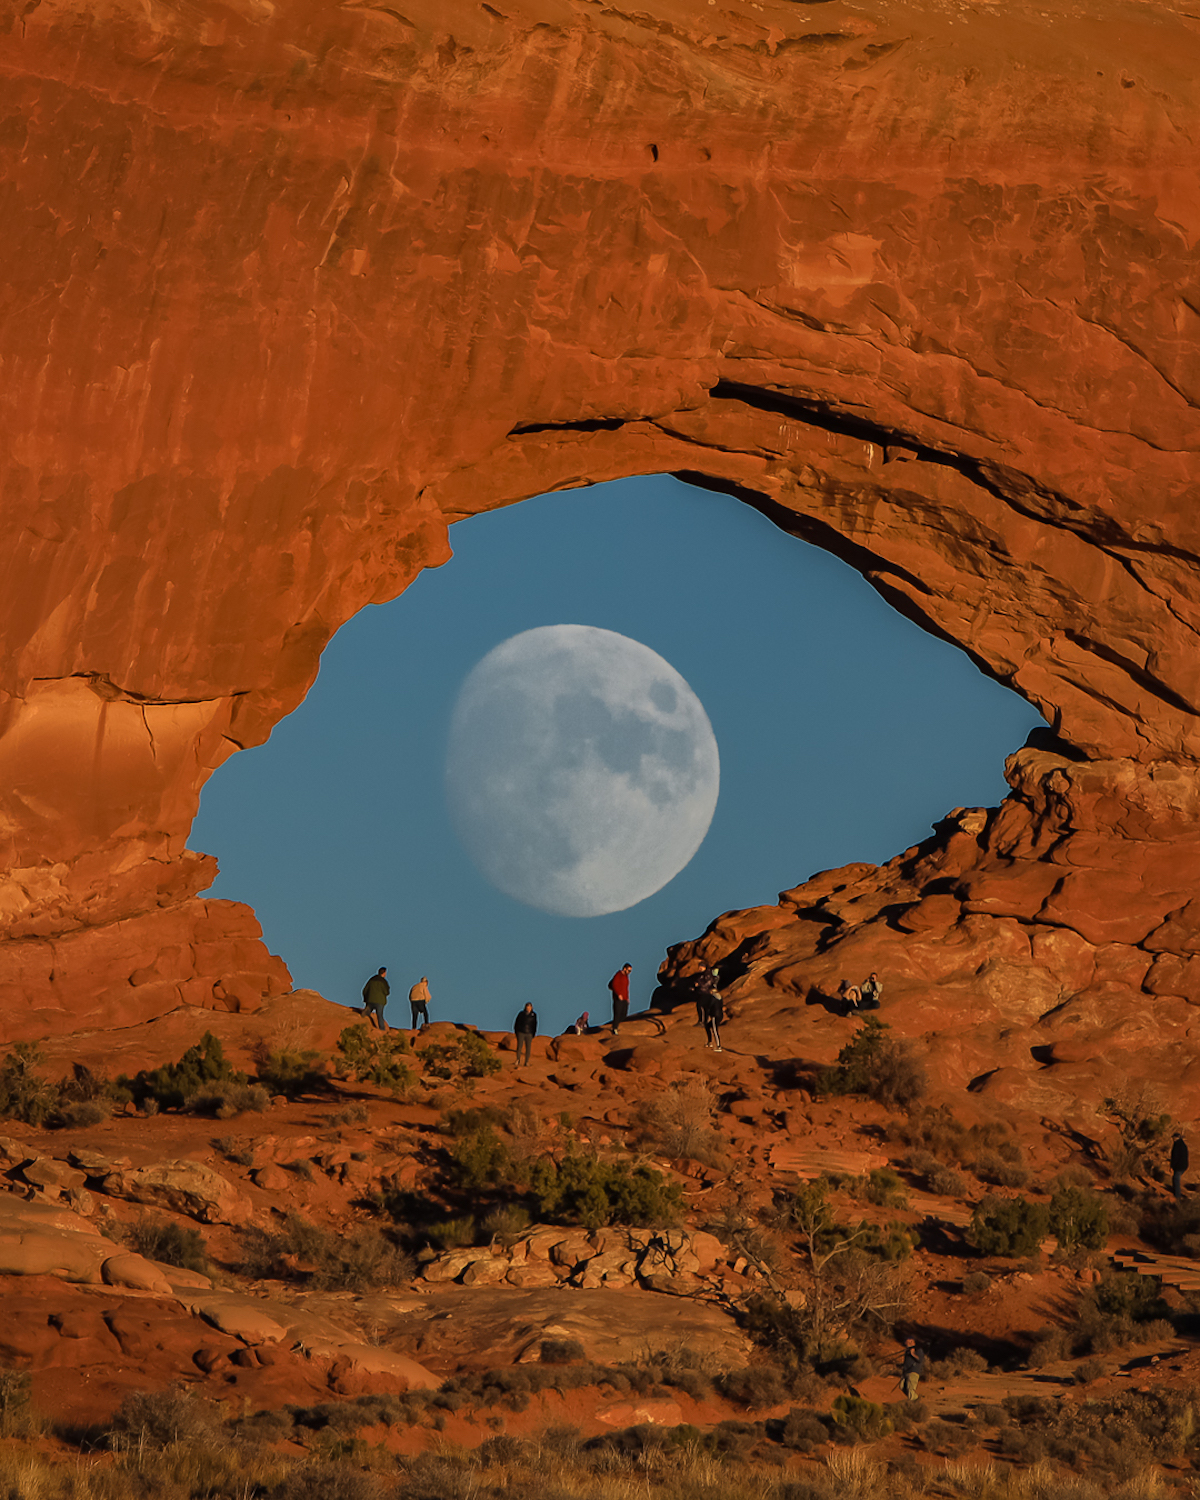 Surreal Moon Photo in Arches National Park